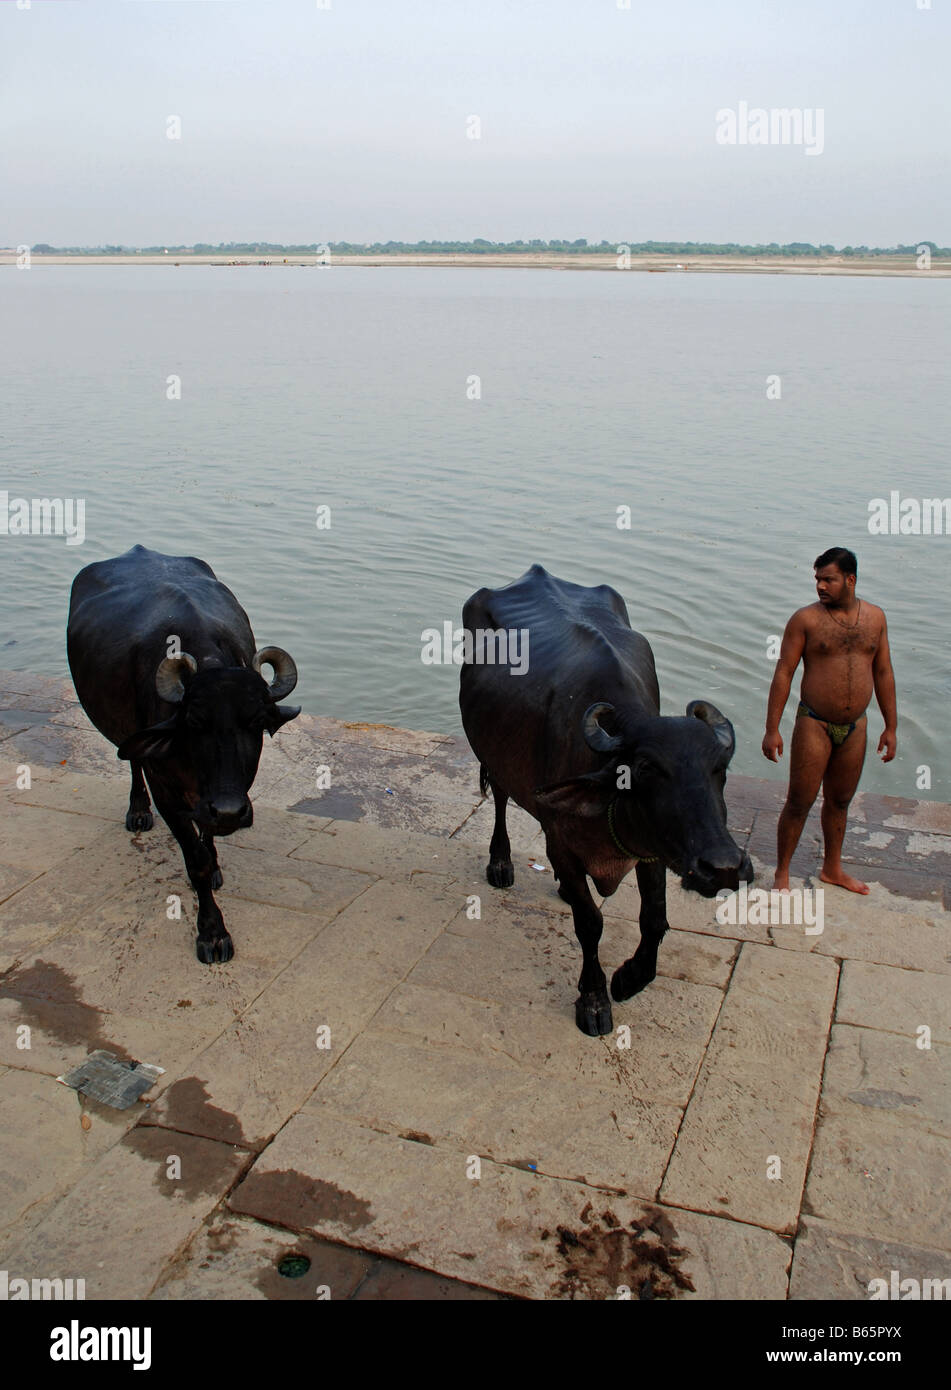 Water buffalos comming out of river Ganges and  man in his briefs watching. Varanasi, India. - Stock Image